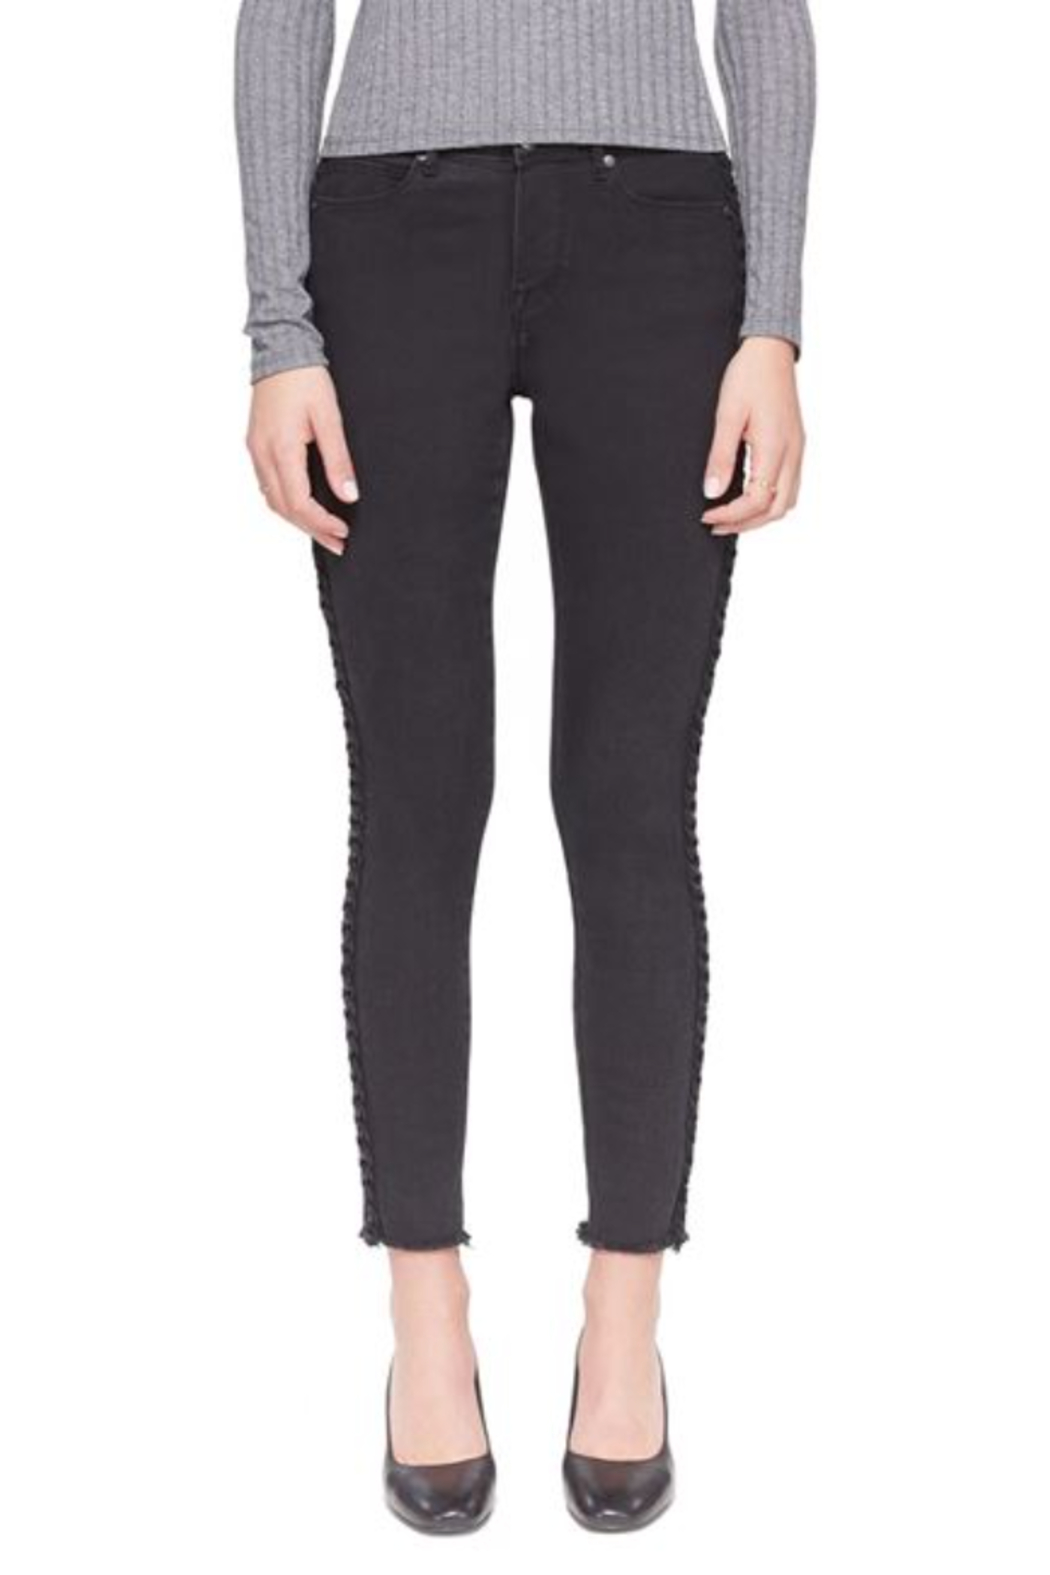 Lola Jeans HIgh Rise Braided Black Skinny  Jean - Front Full Image